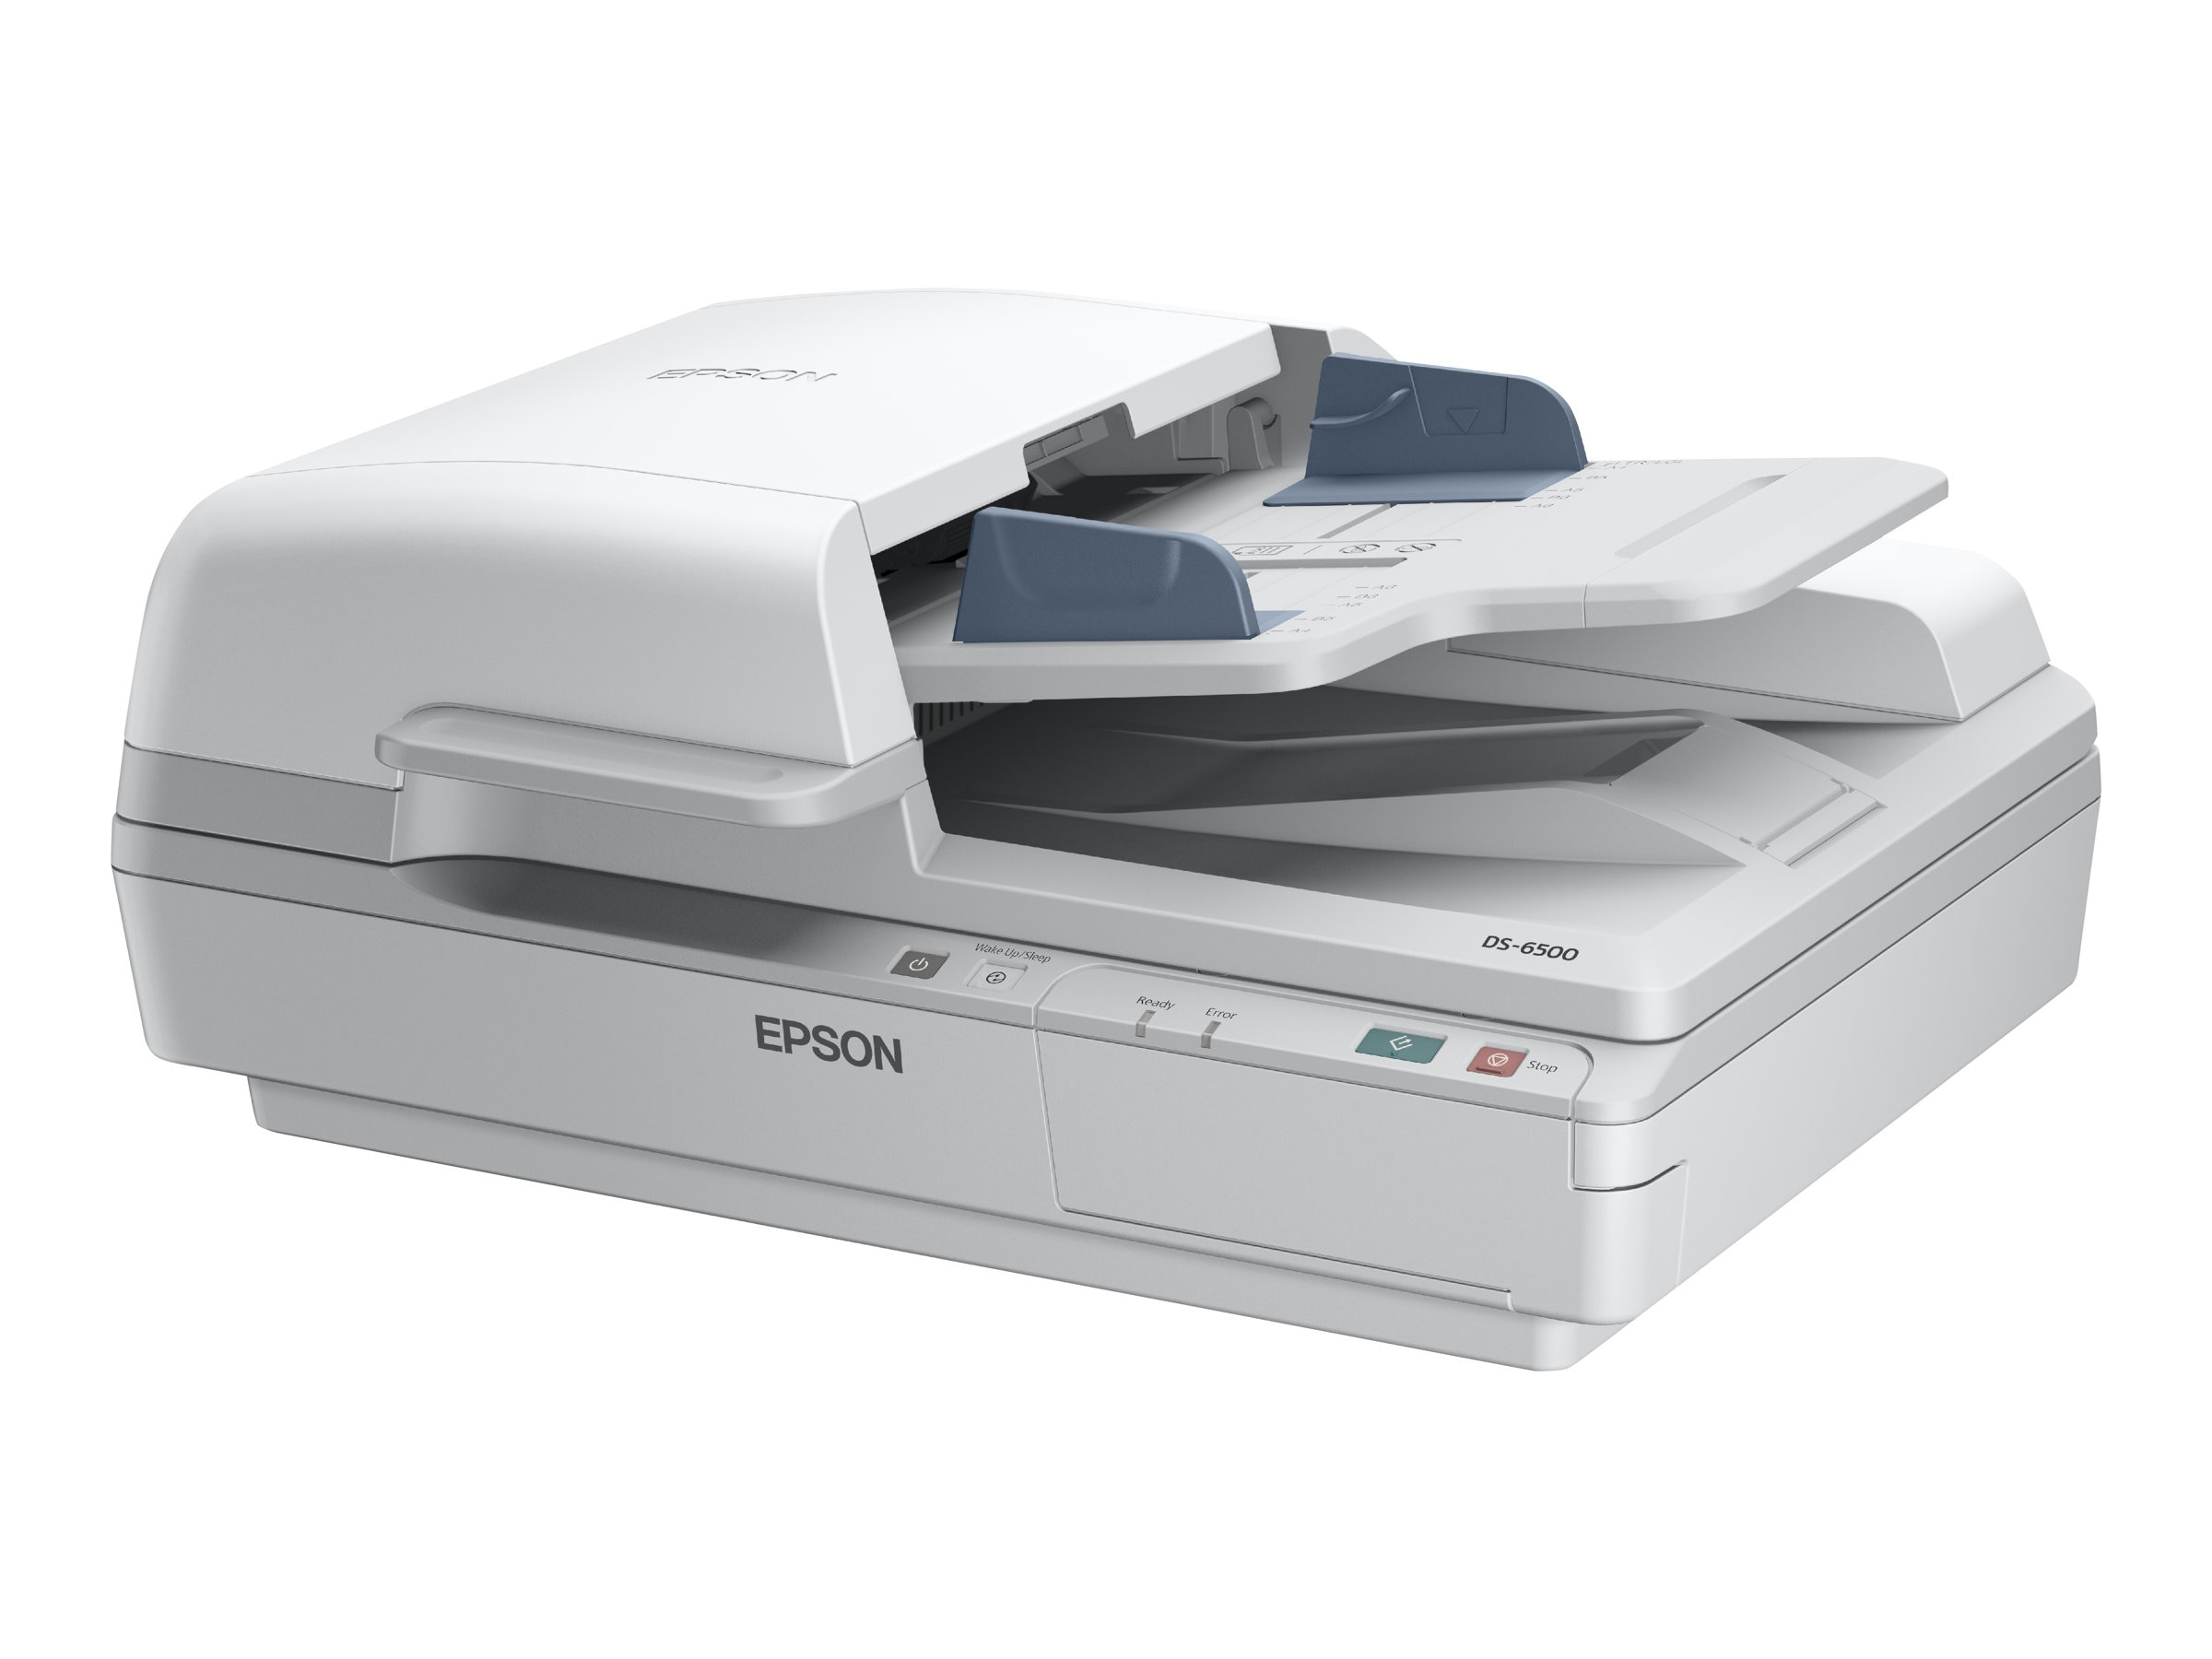 Epson WorkForce DS-7500 Scanner - $1199 less instant rebate of $40.00, B11B205321, 14777582, Scanners